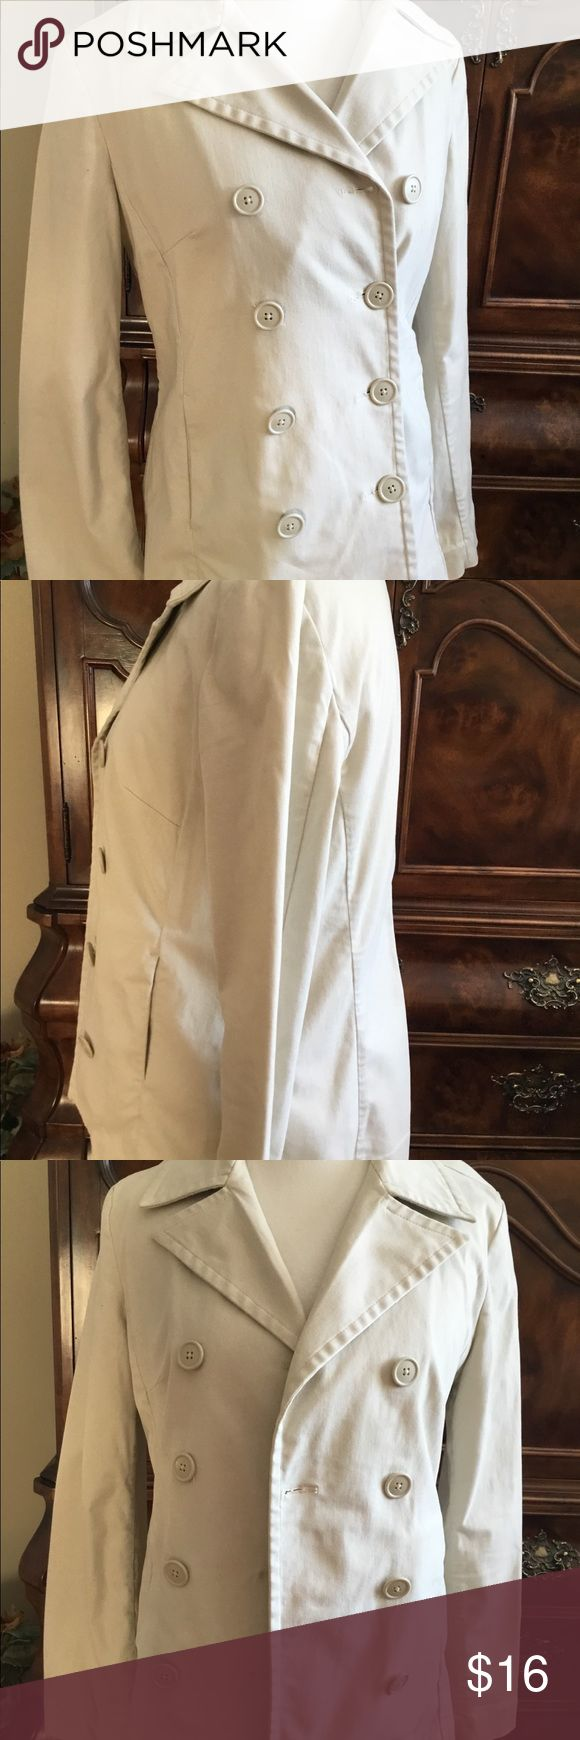 GAP Tan Lighter Weight Jacket Sz M Great Cond 🛍 Gap light tan jacket Sz M. Lighter weight perfect for Spring/Fall. Great quality nice condition GAP Jackets & Coats